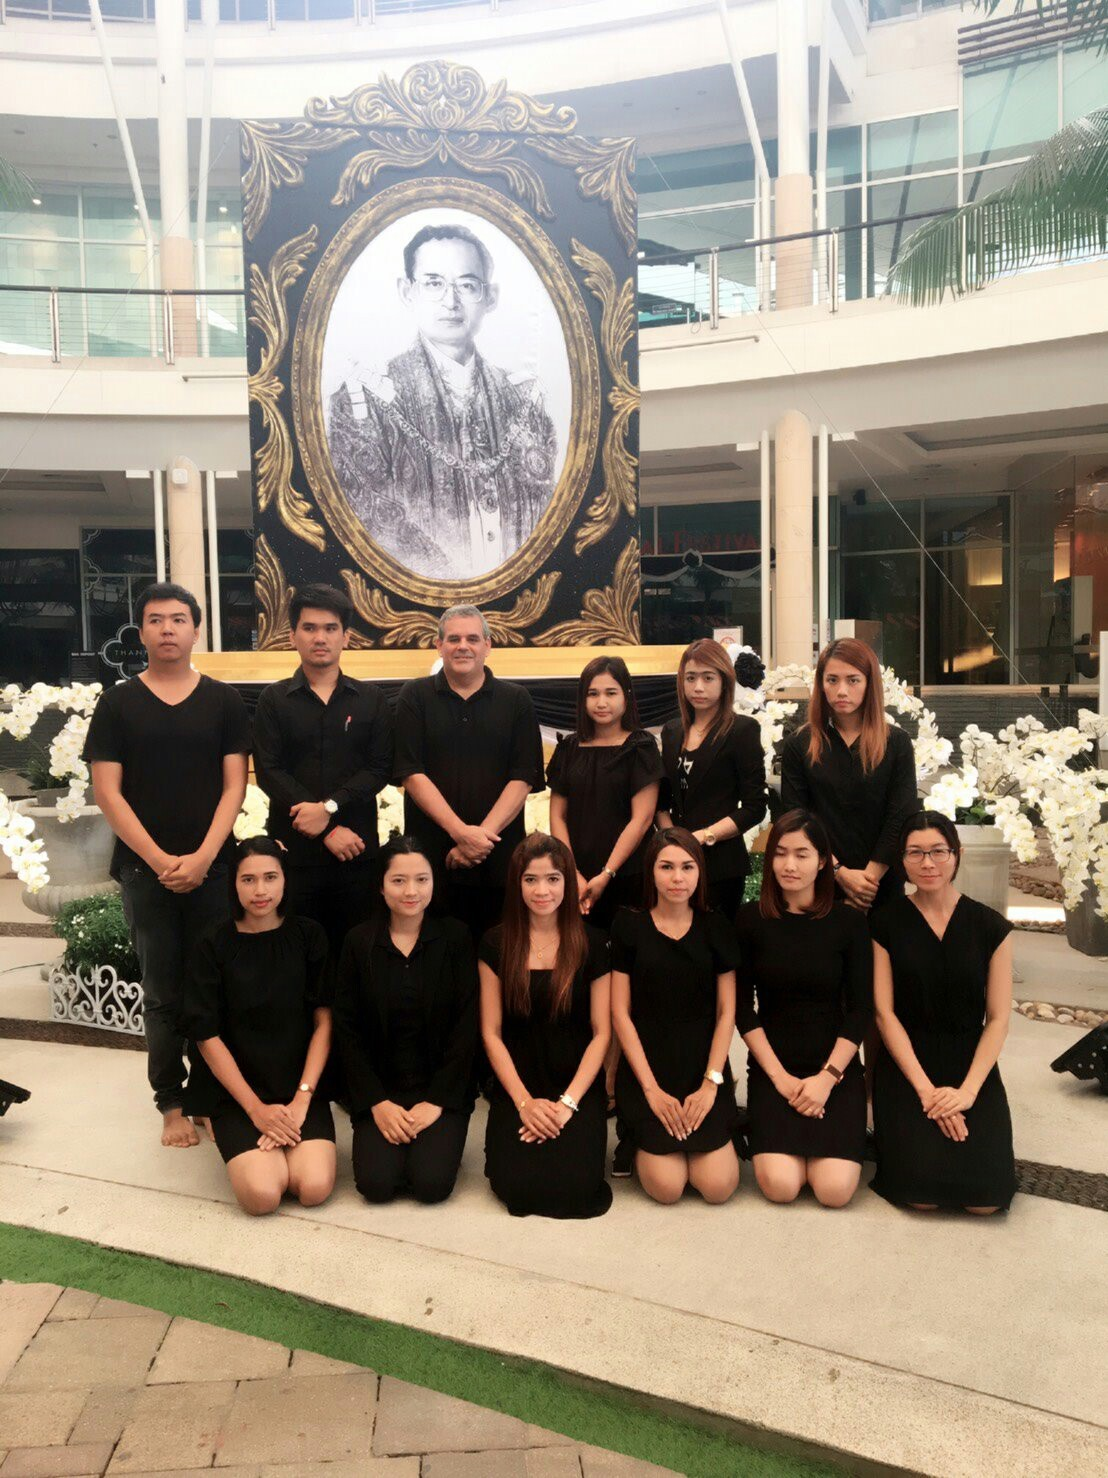 Paying respects to His Majesty King Bhumibol Adulyadej with my students. Photo taken on October 26, 2016